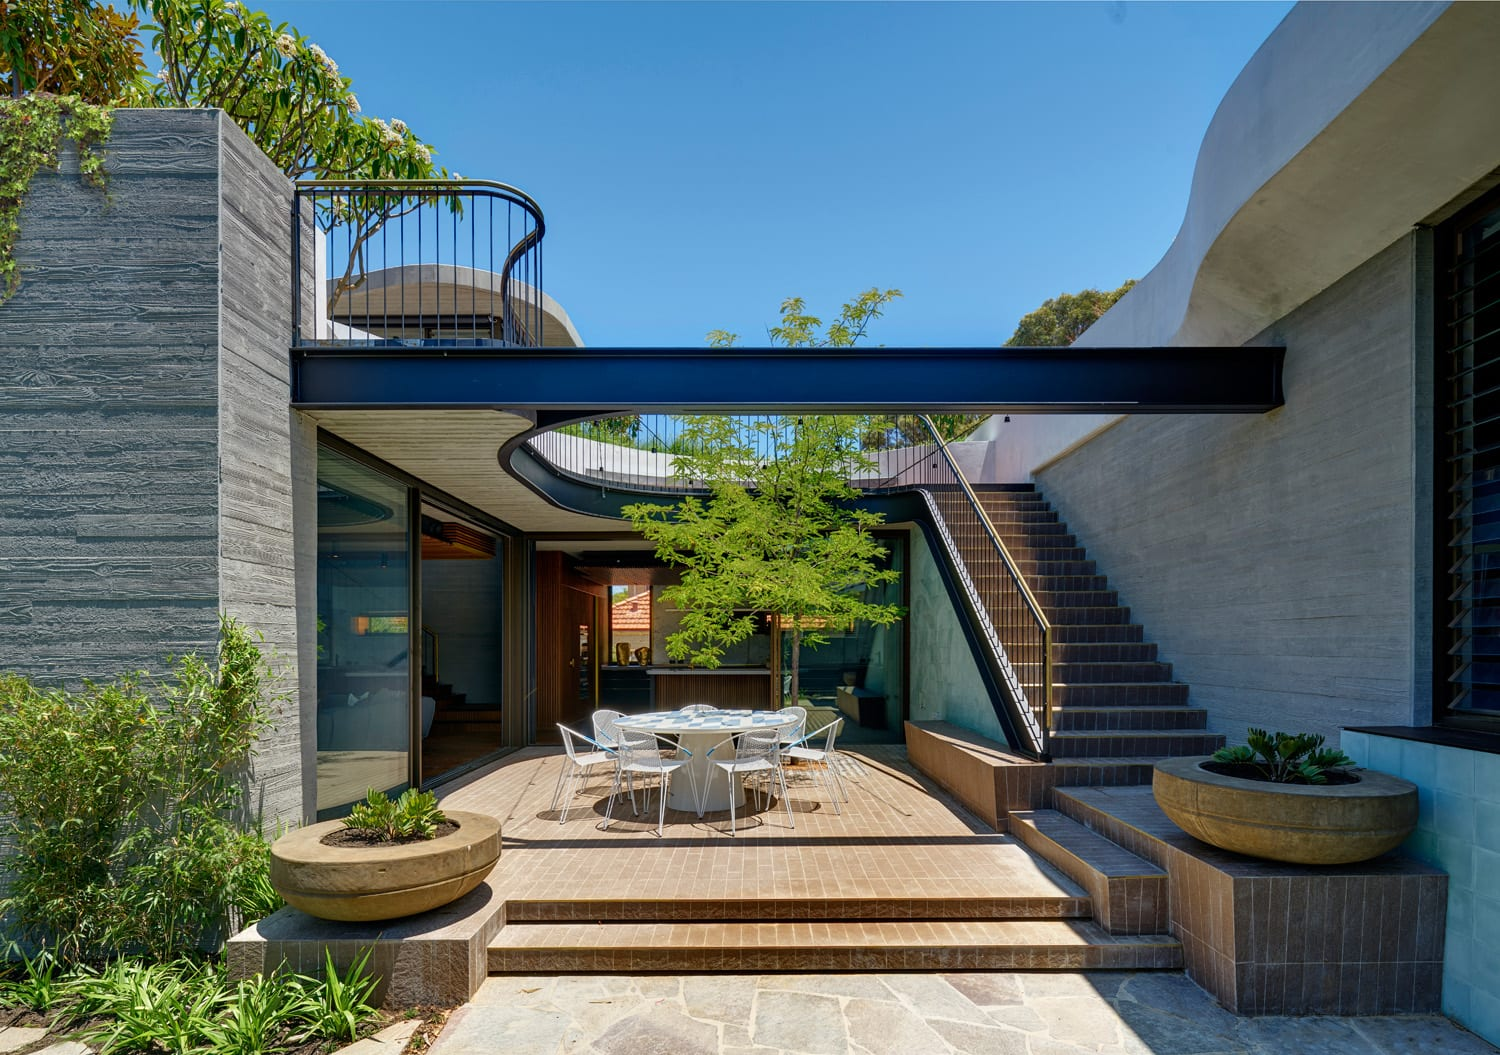 Roscommon House in Floreat, Western Australia by Neil Cownie | Yellowtrace